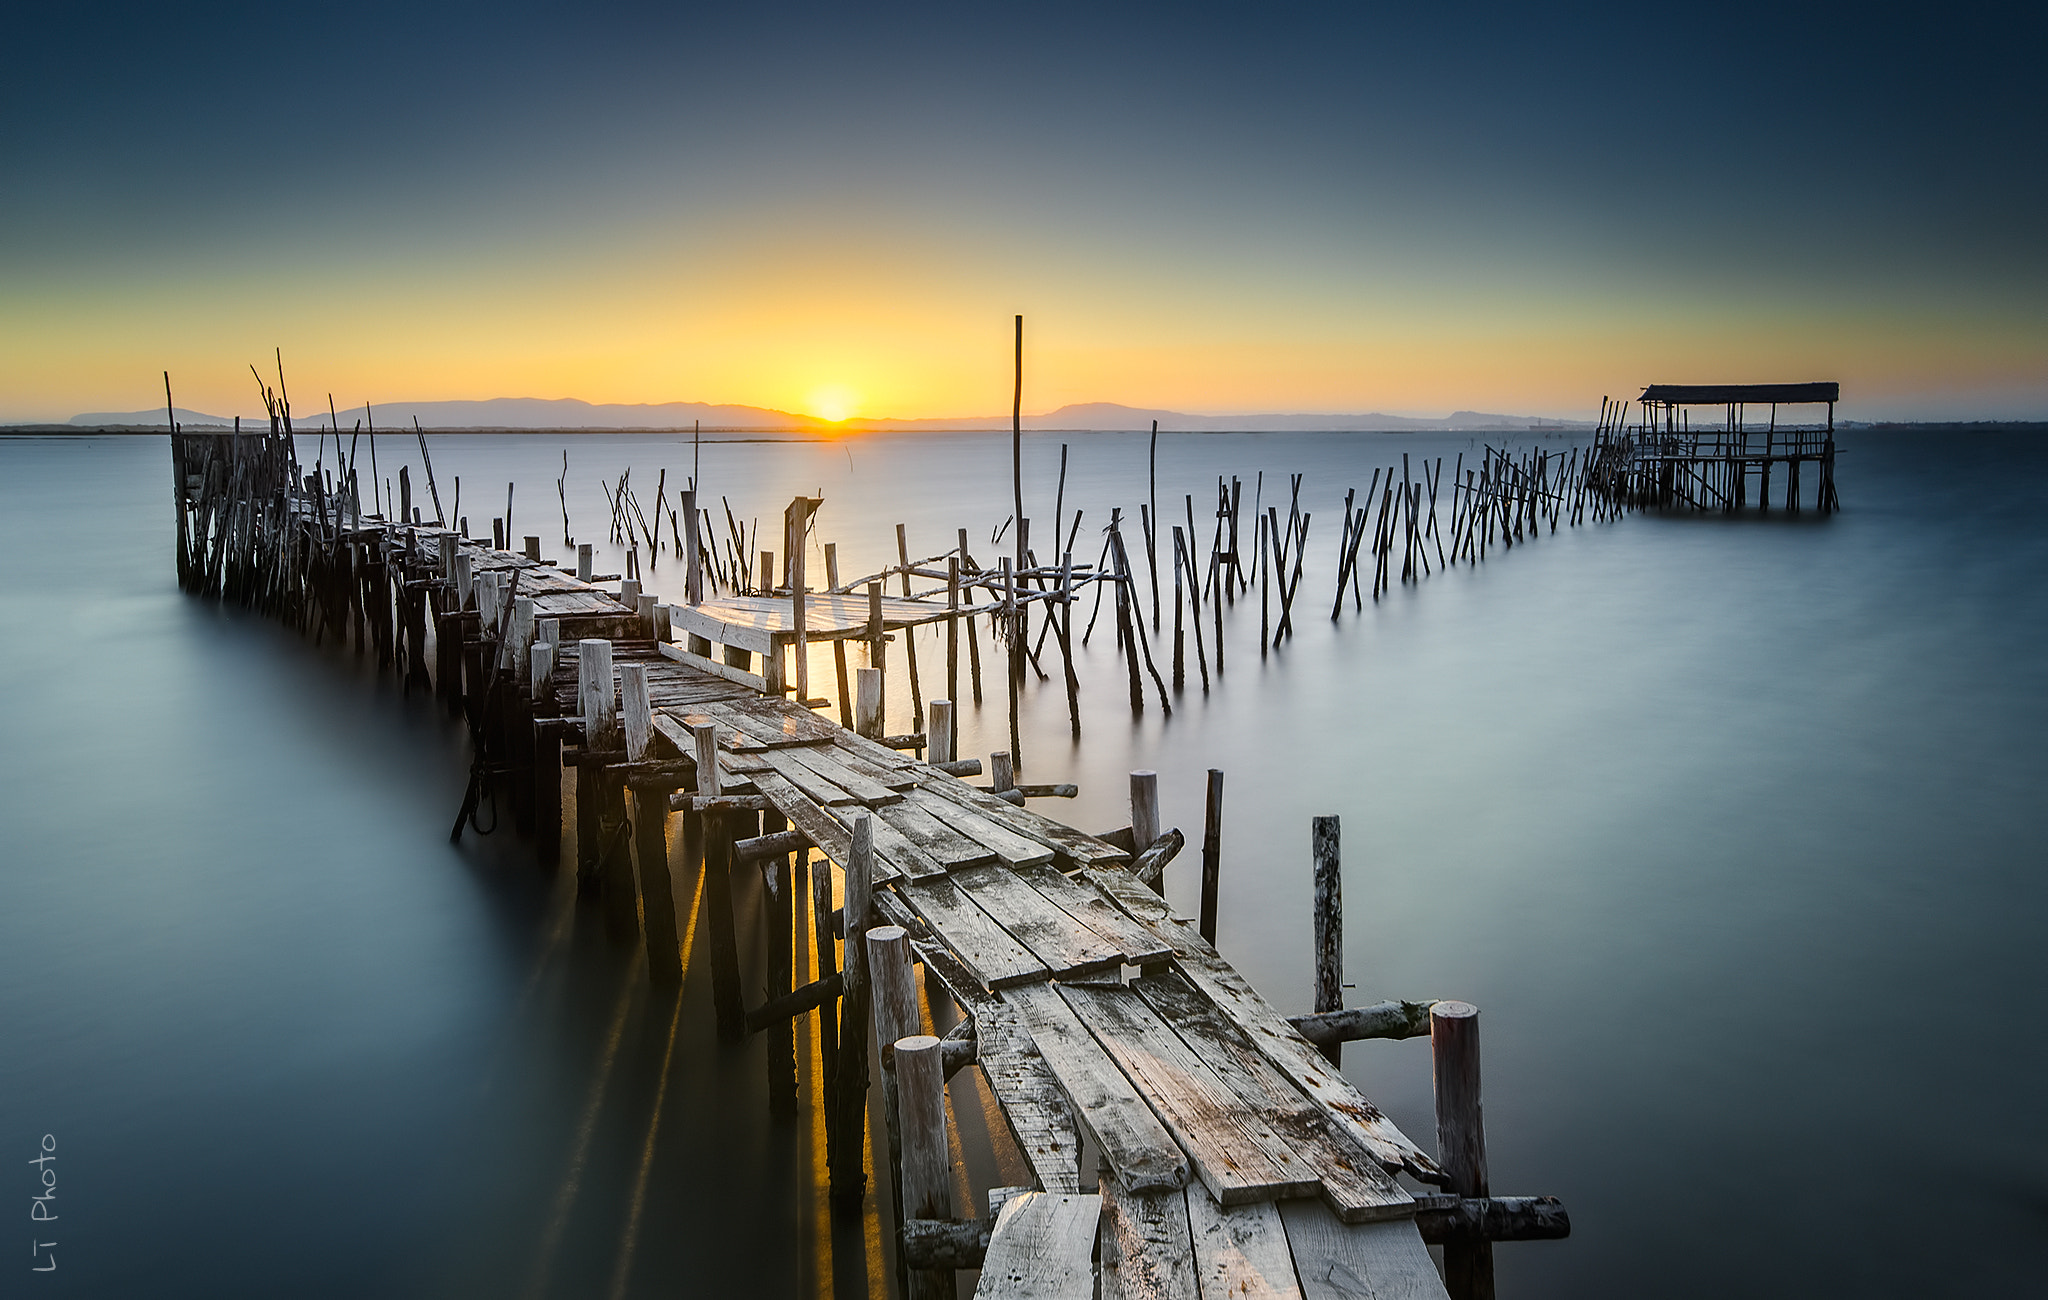 Photograph The End of Days by Javier de la Torre on 500px